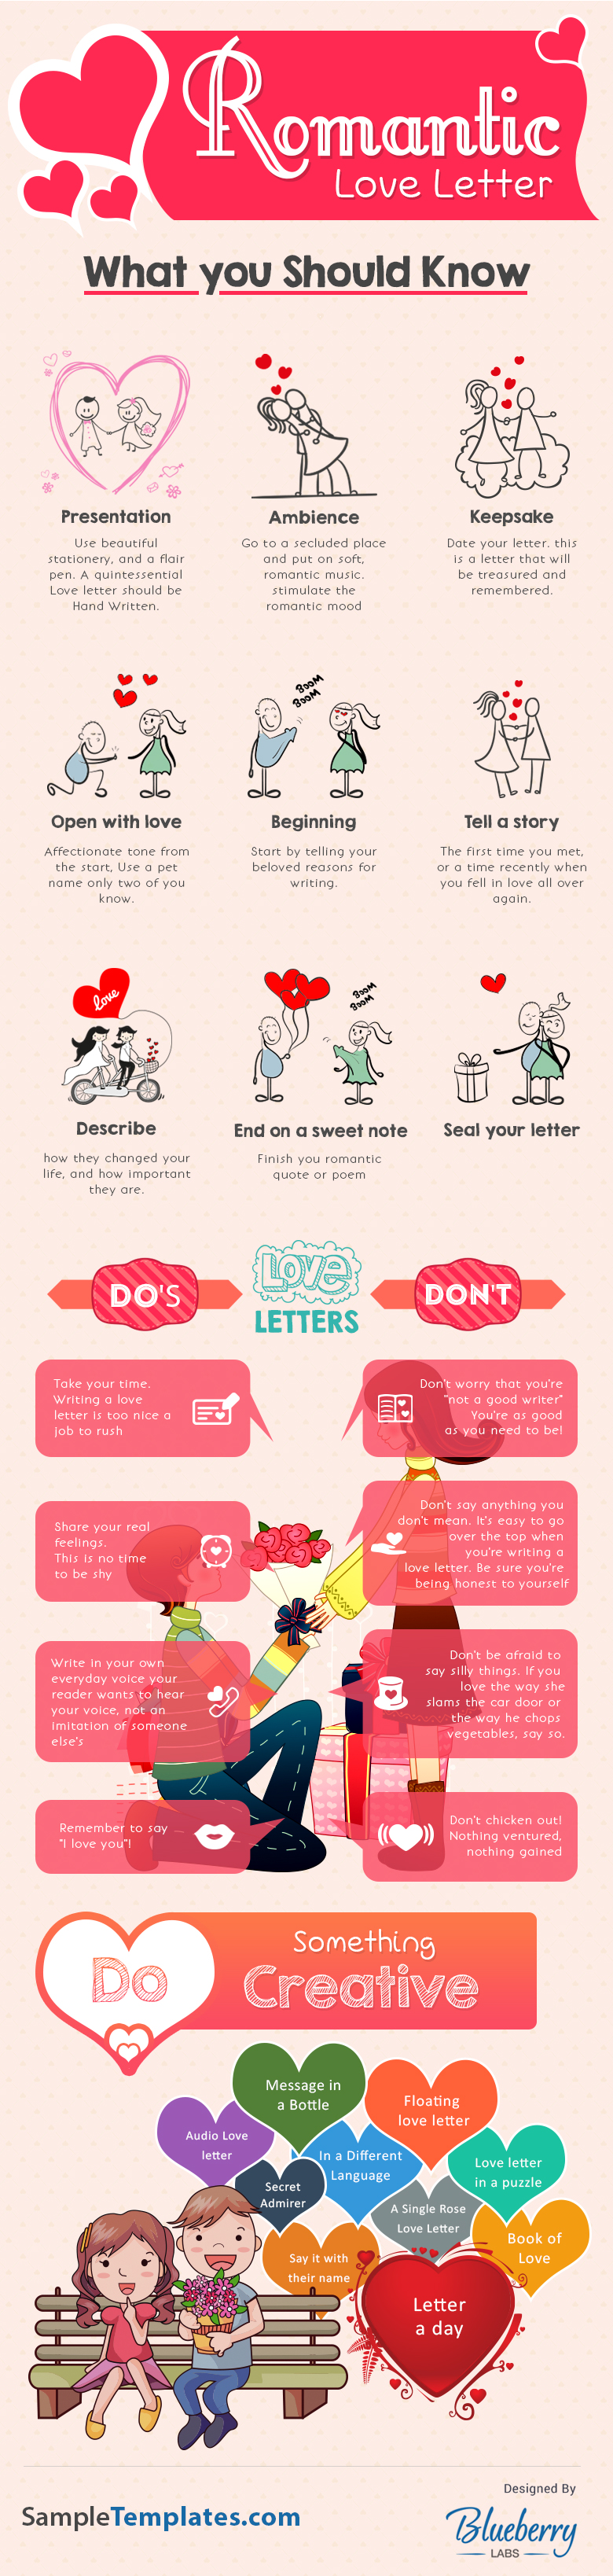 Infographic How To Write A Romantic Love Letter DesignTAXI